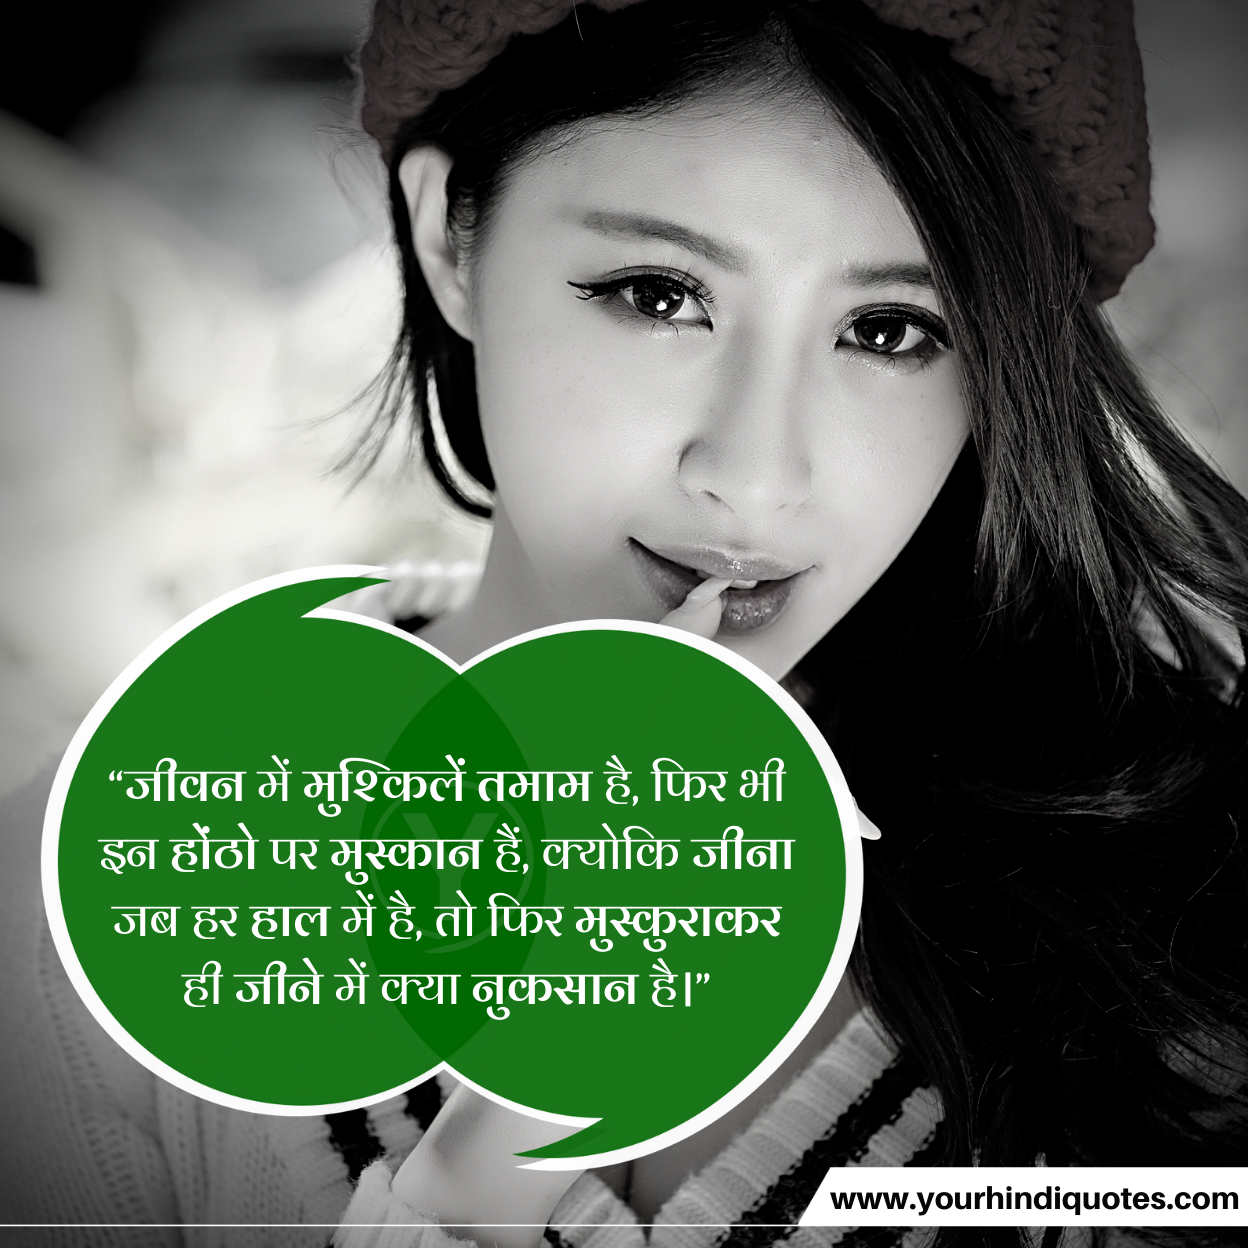 Hindi Best Life Quotes Images